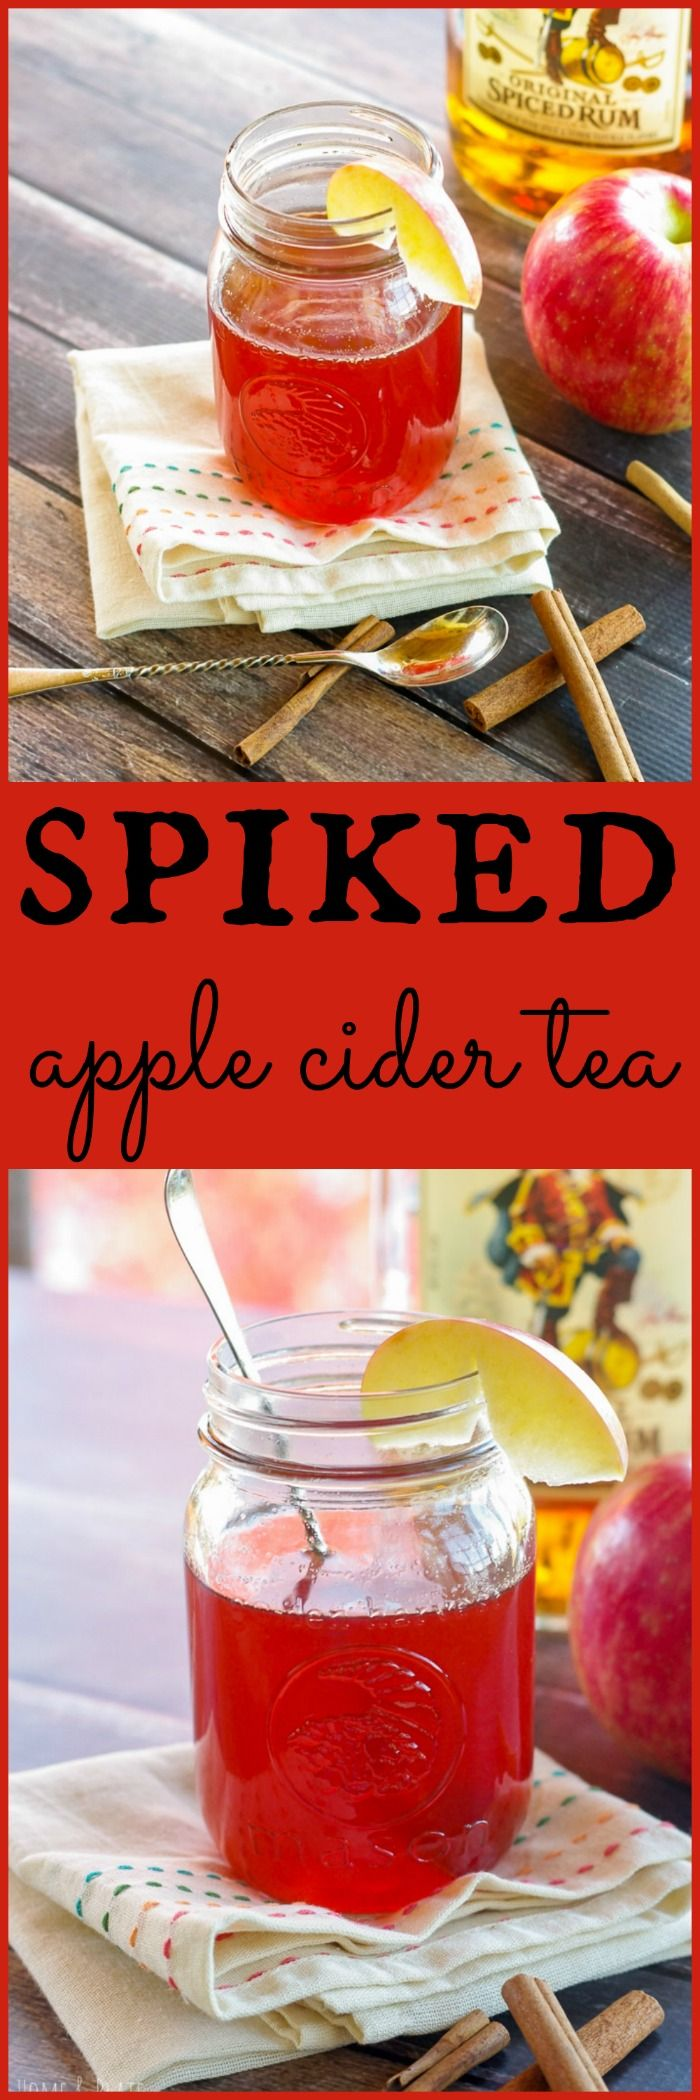 Spiked Apple Cider Recipe (Hot or Cold) - Home & Plate